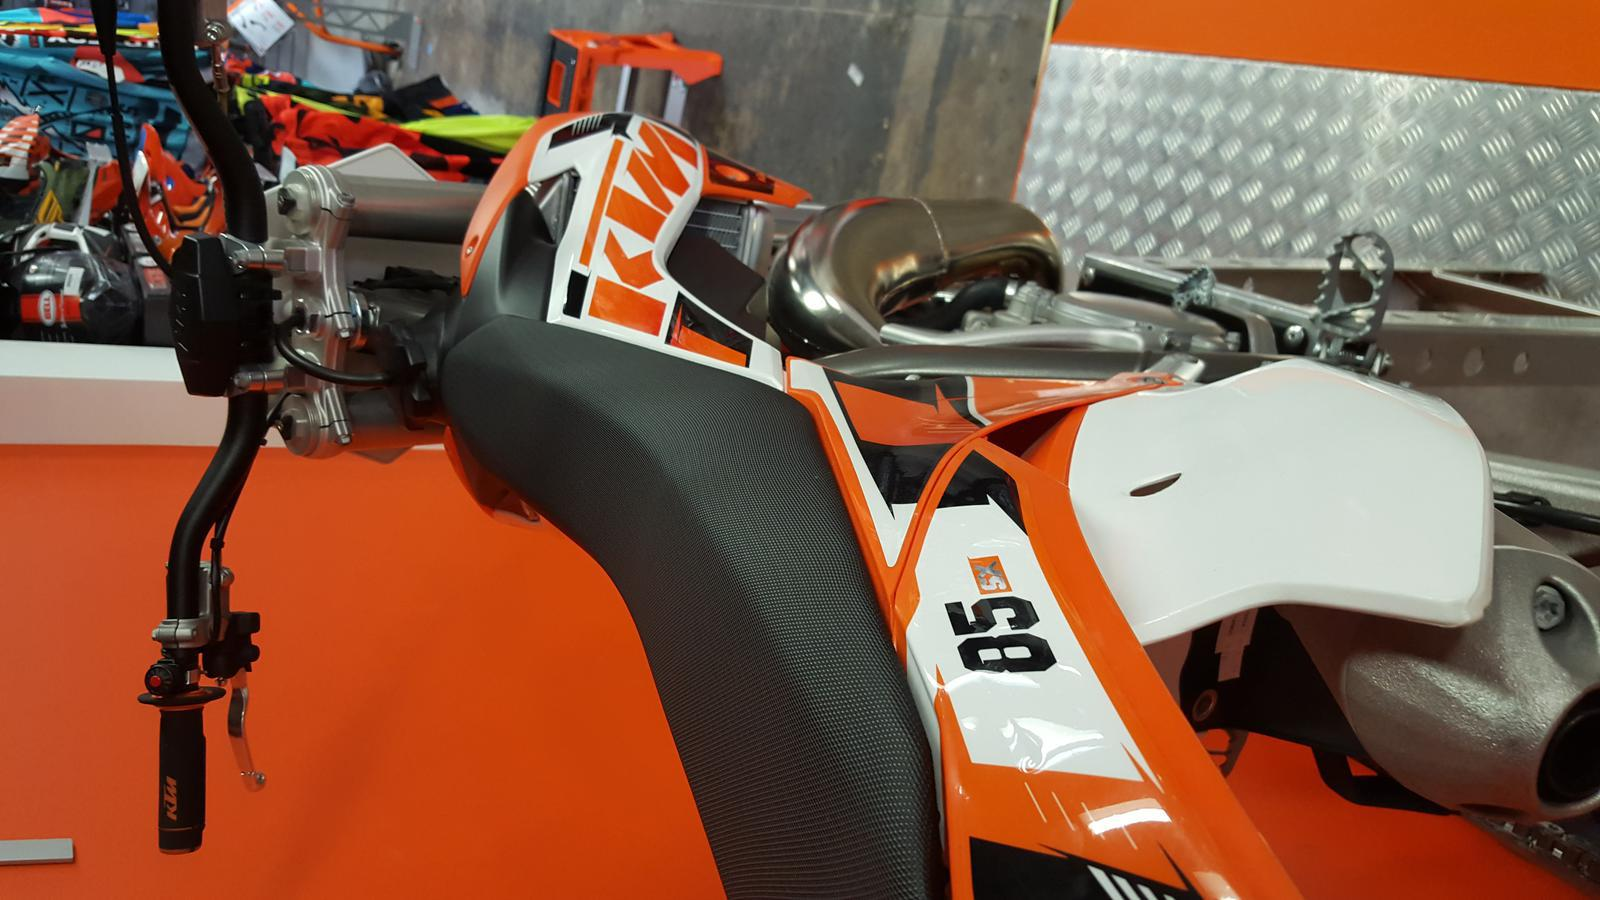 2015 ktm 85 sx for sale in los angeles, ca | beverly hills